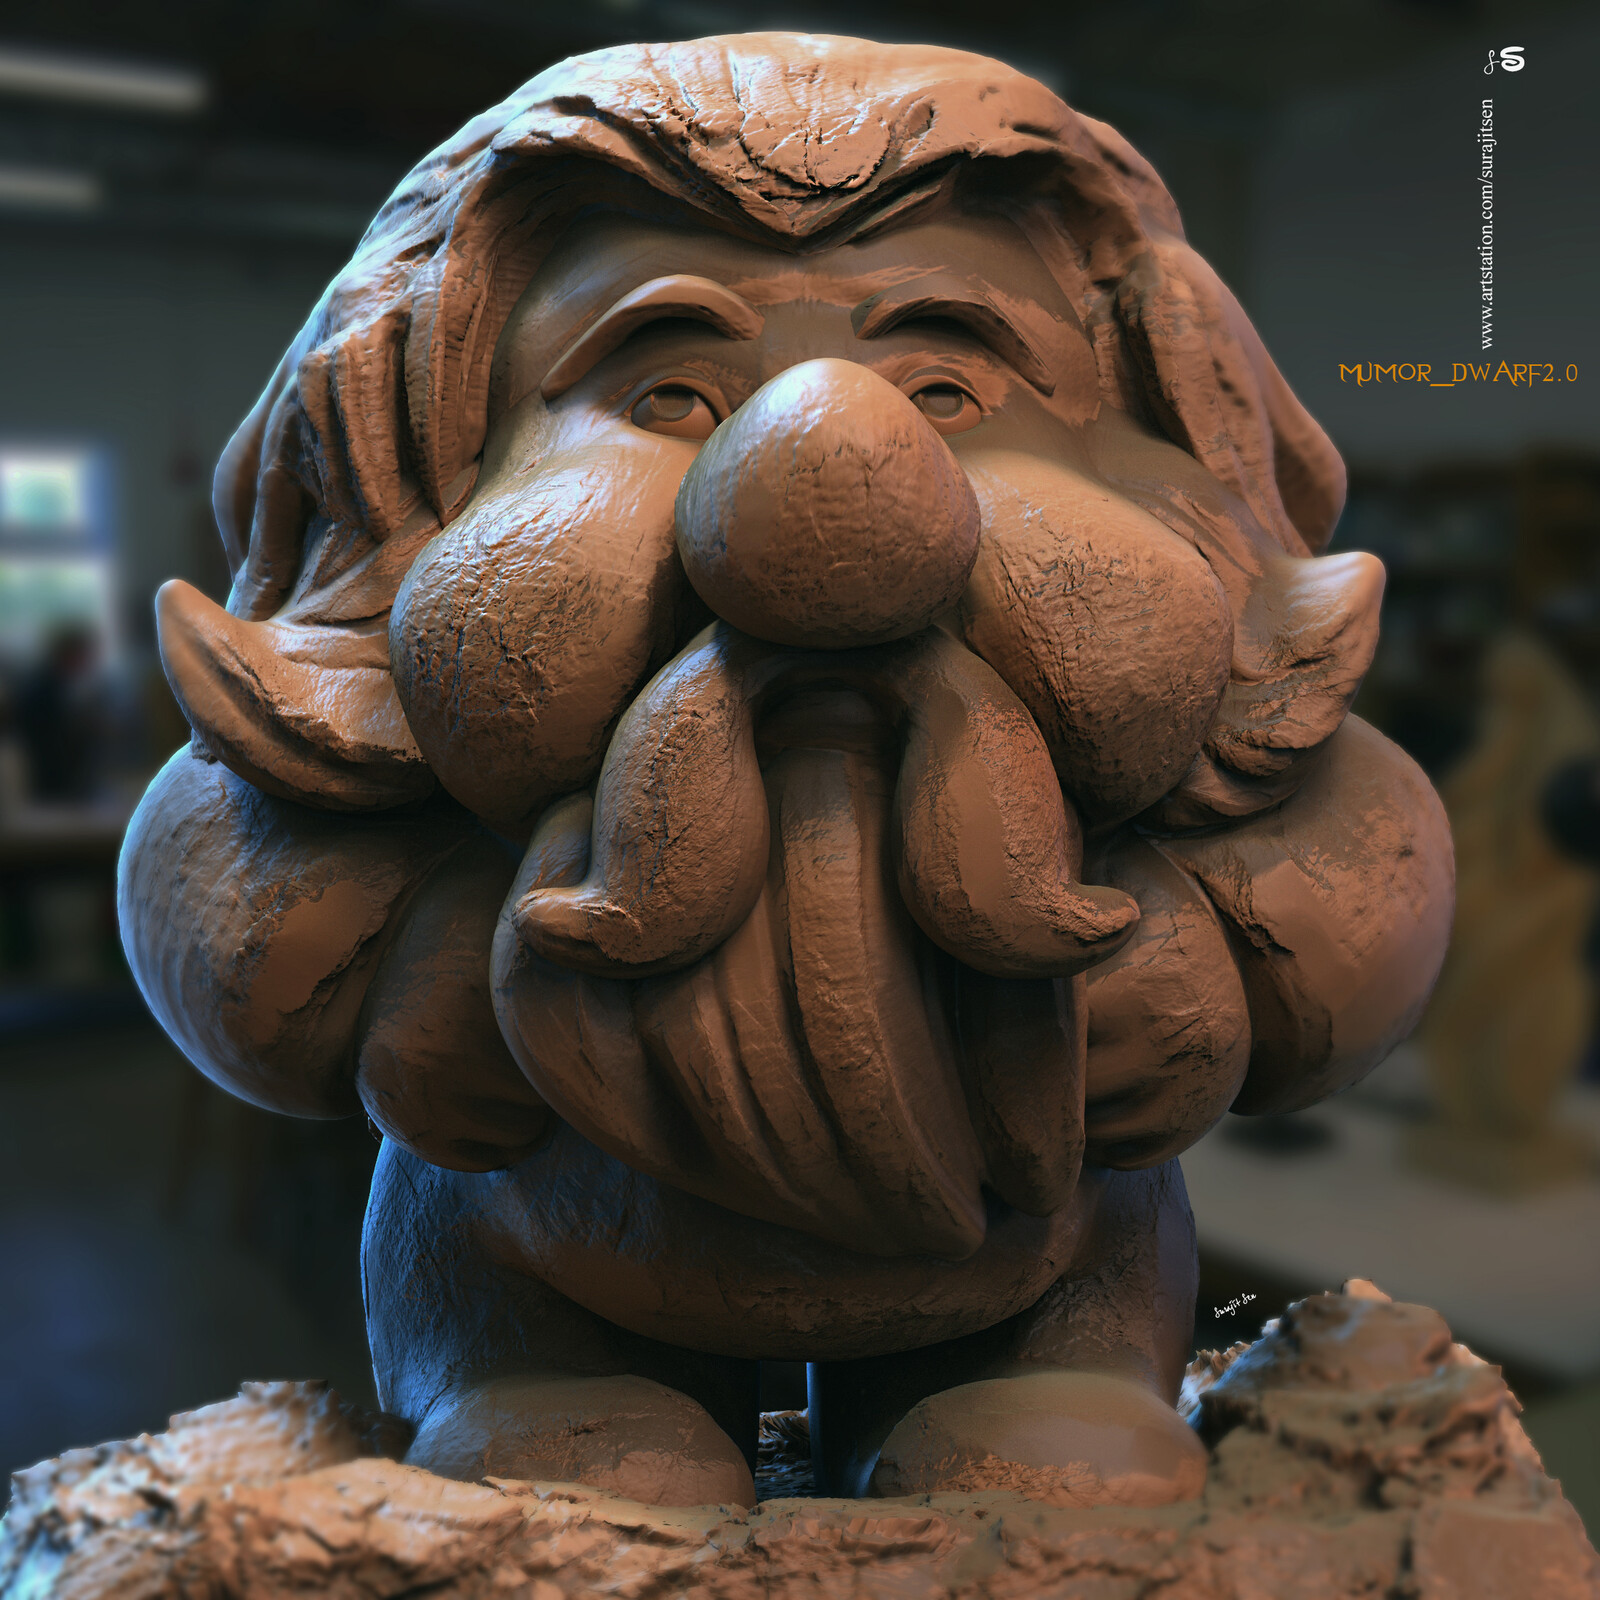 Mumor_Dwarf2.0 one of my free time quick Digital Sculpture. Fun with brushes... Wish to share.